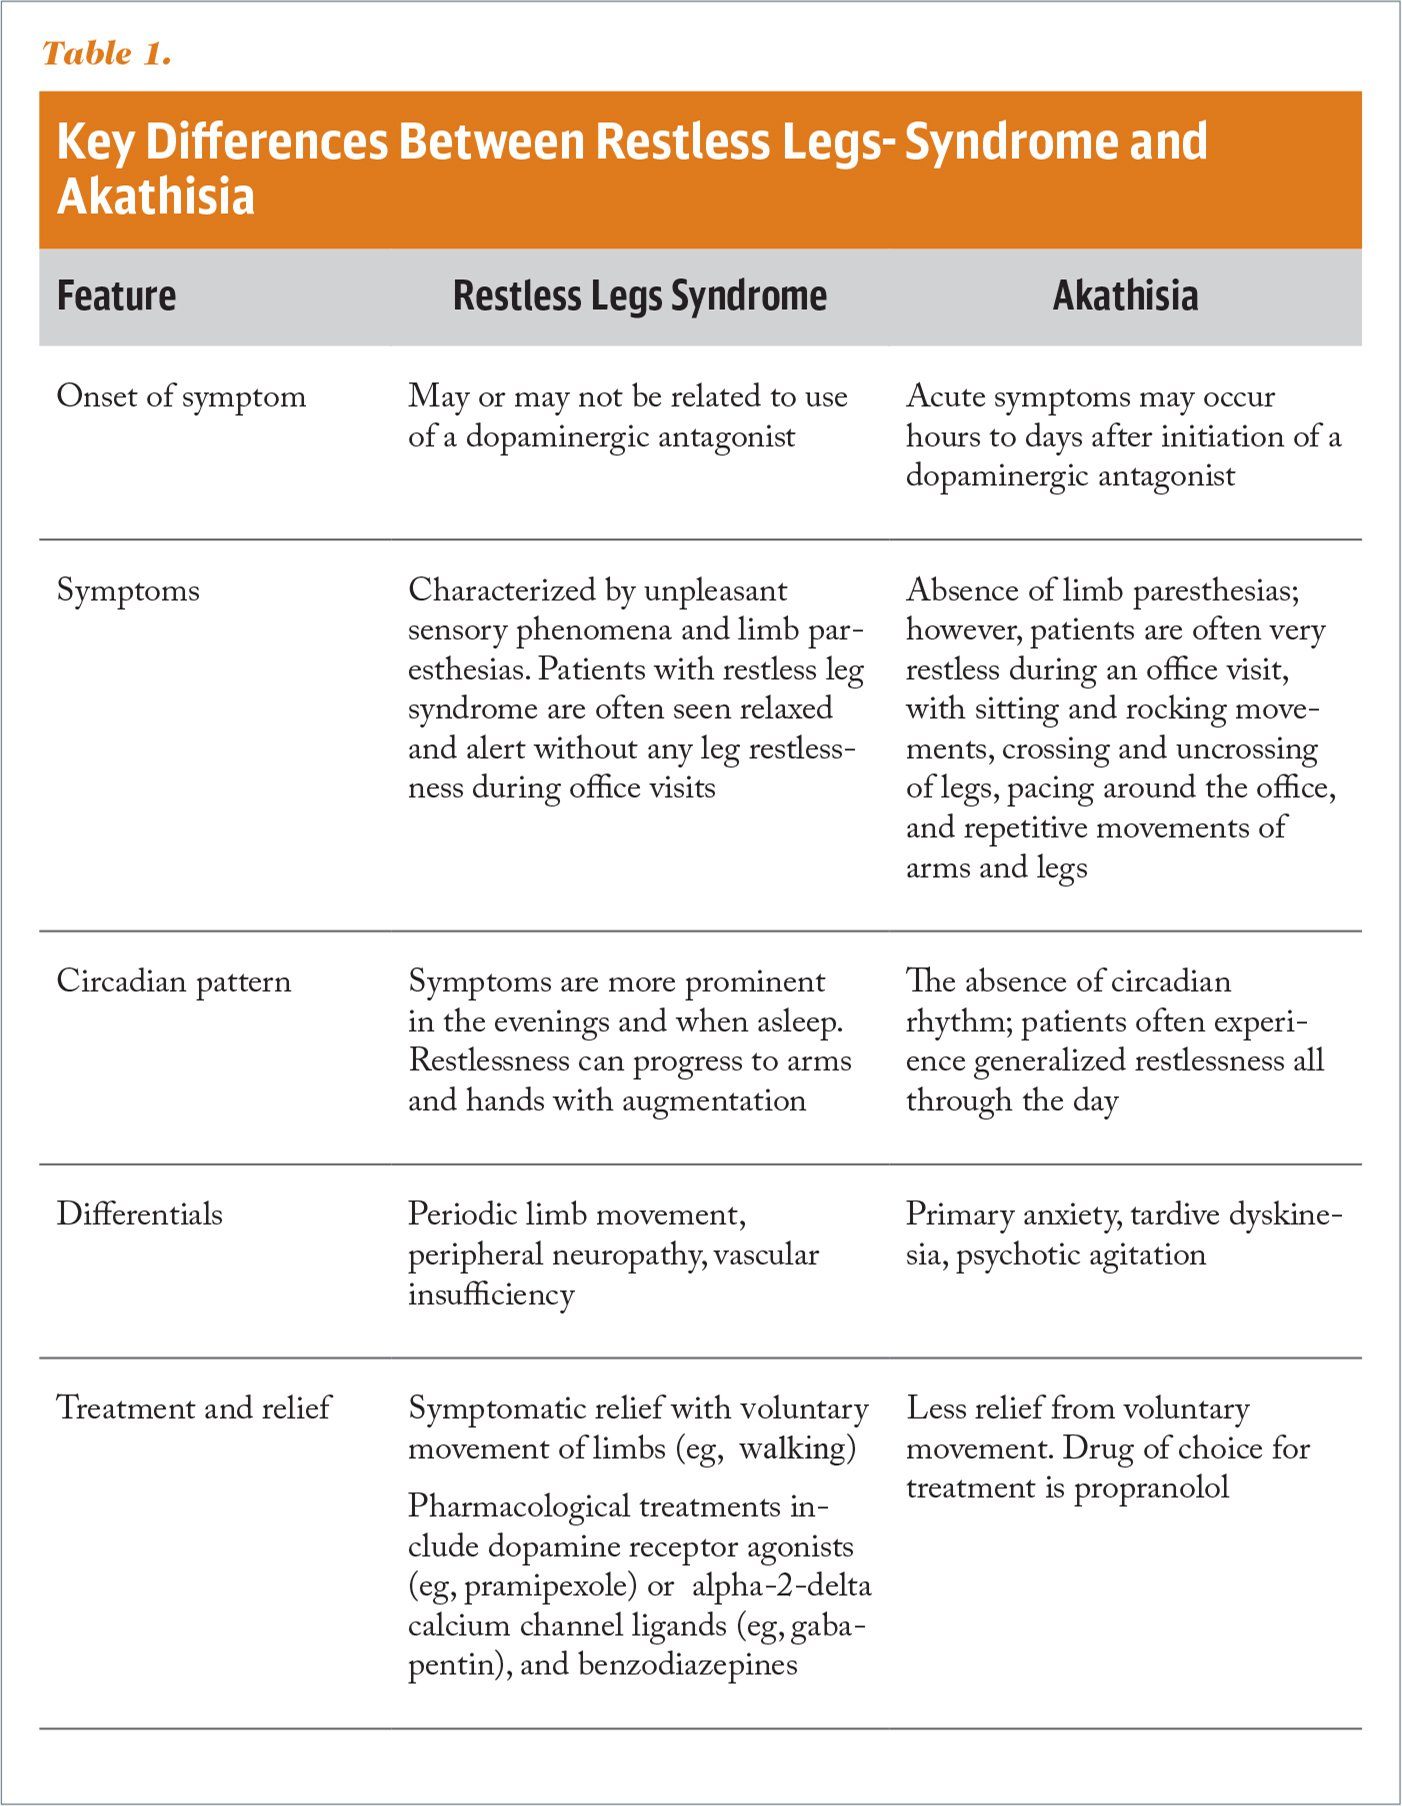 Key Differences Between Restless Legs-Syndrome and Akathisia